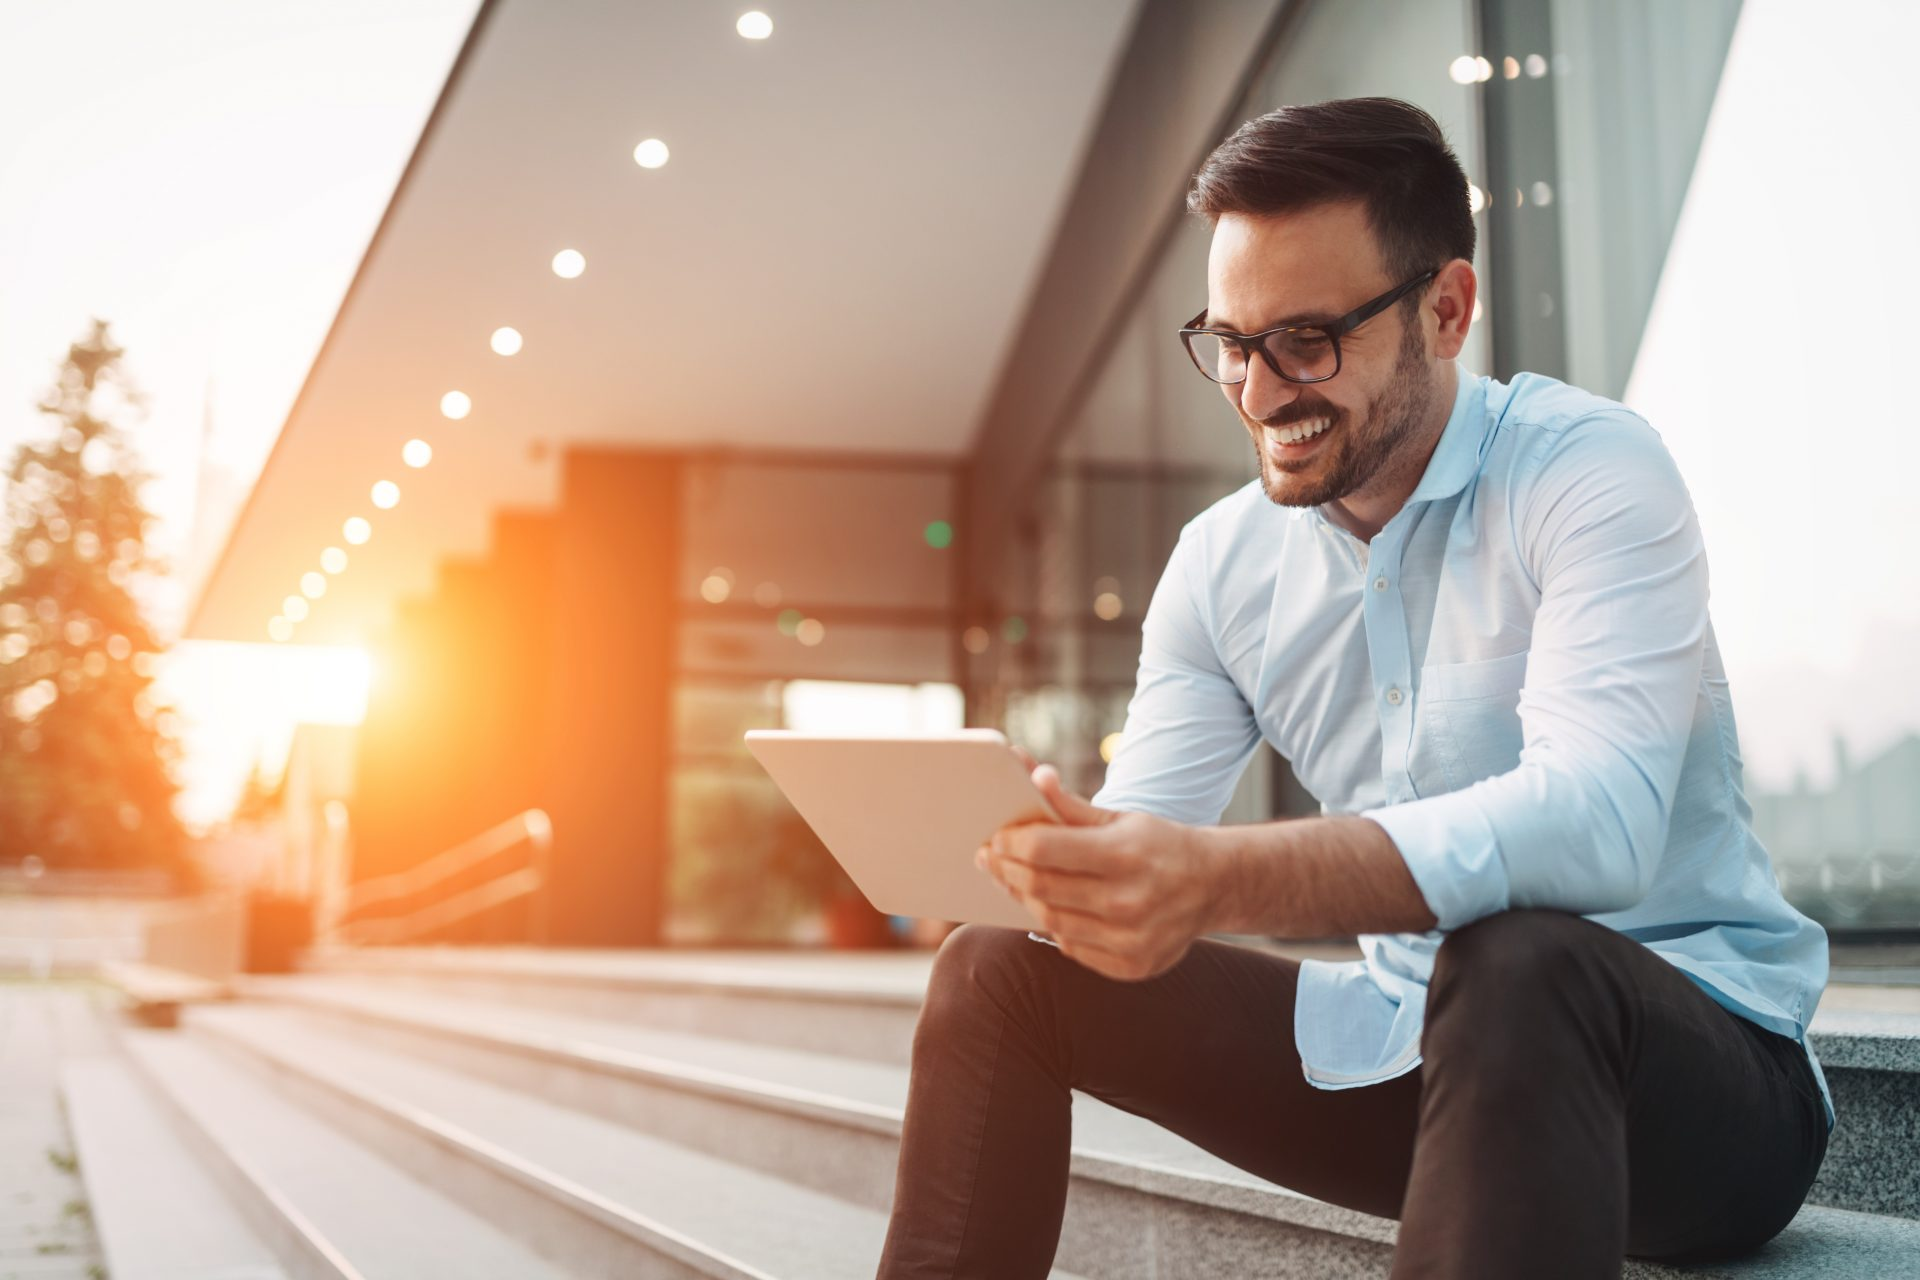 Man sitting outside smiling while working on tablet